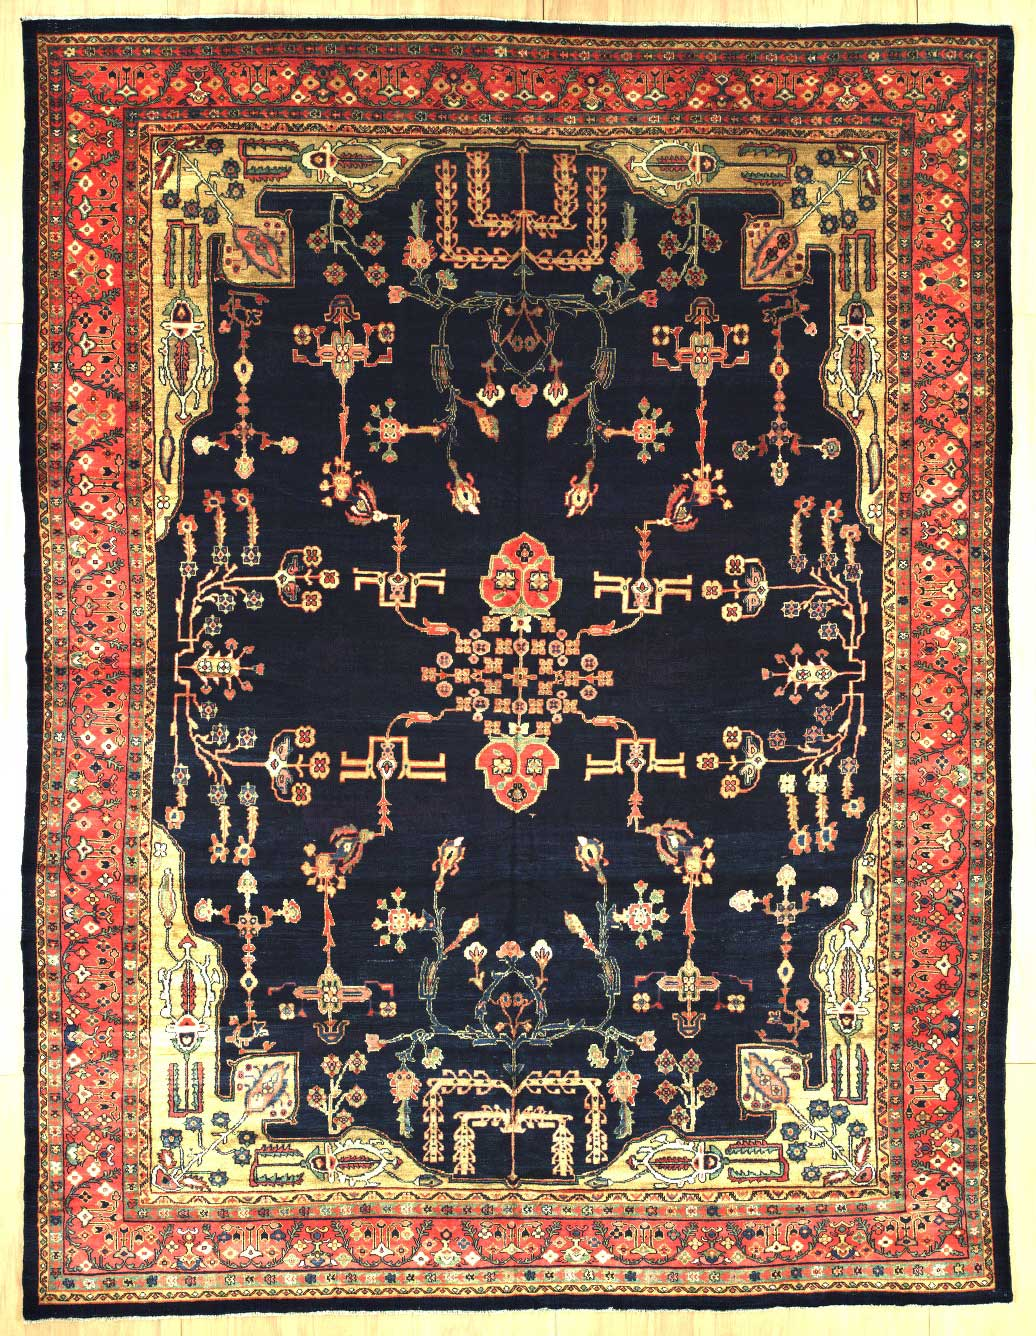 antique rugs buy antique designer rugs nj, antique serapi rugs, antique heriz rugs - antique RUCDXMB